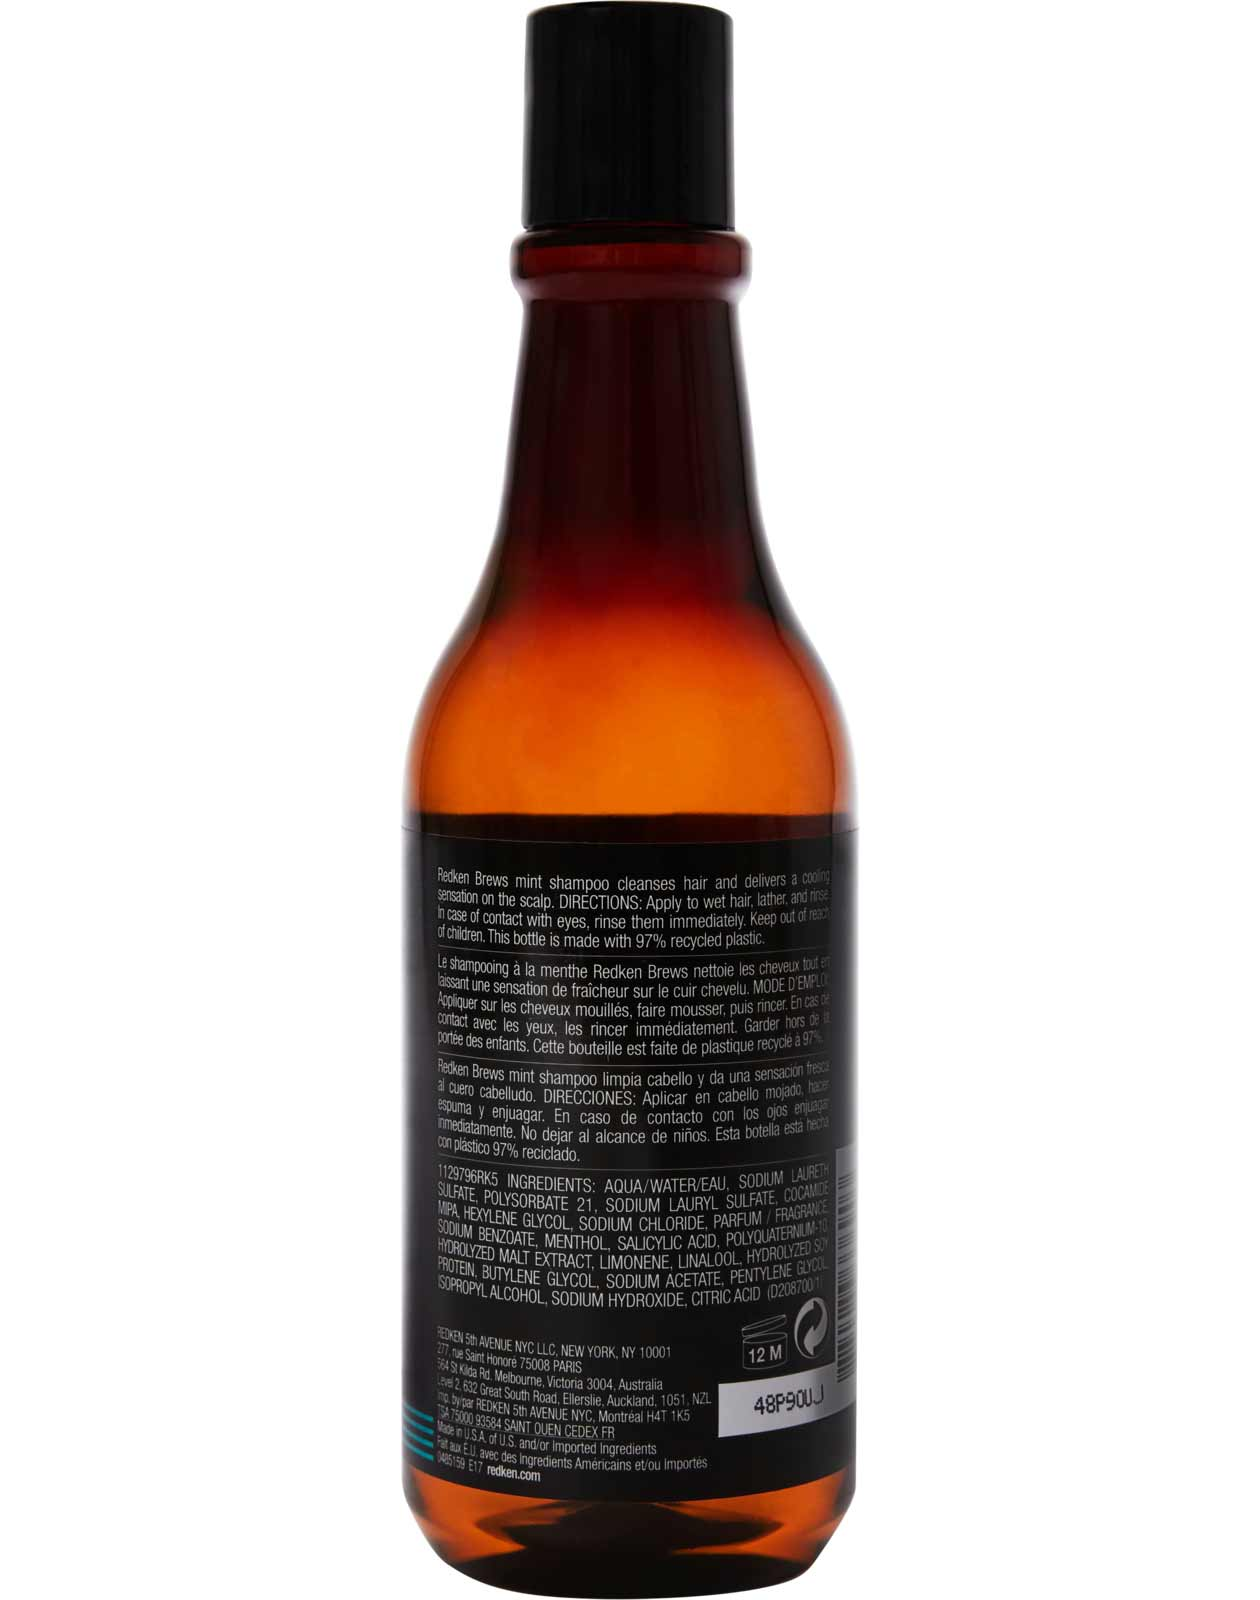 Redken Brews Mint Shampoo Back 1260x1600.jpg